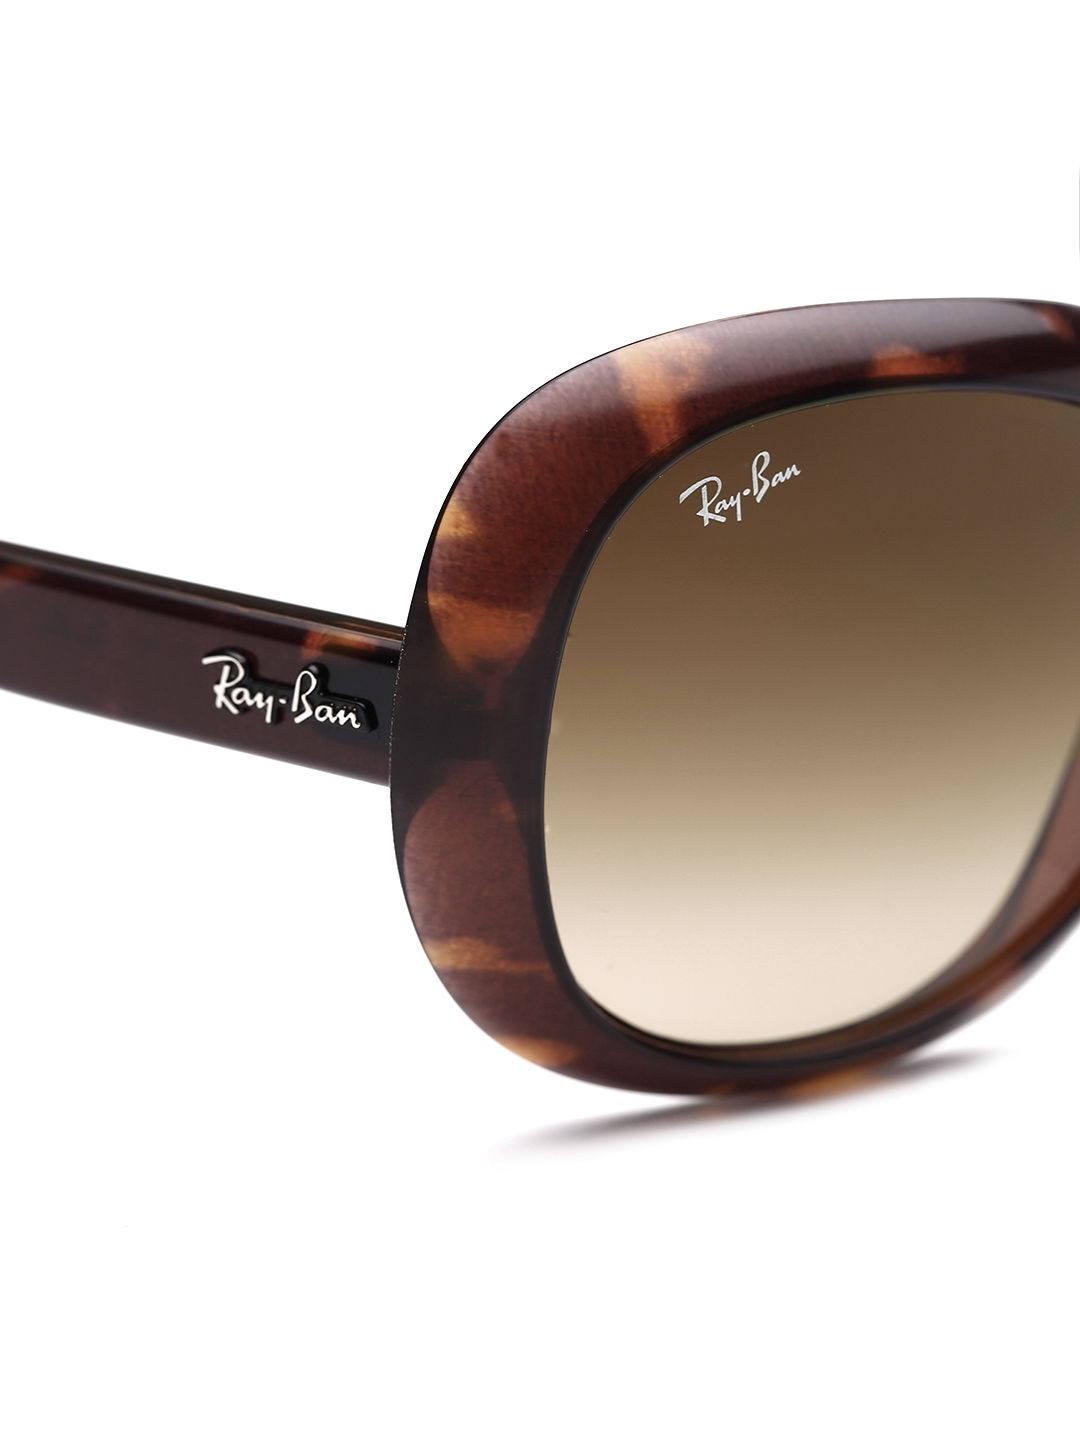 dc2d8da9b0835c Ray Ban 58014 Price In Philippines « Heritage Malta